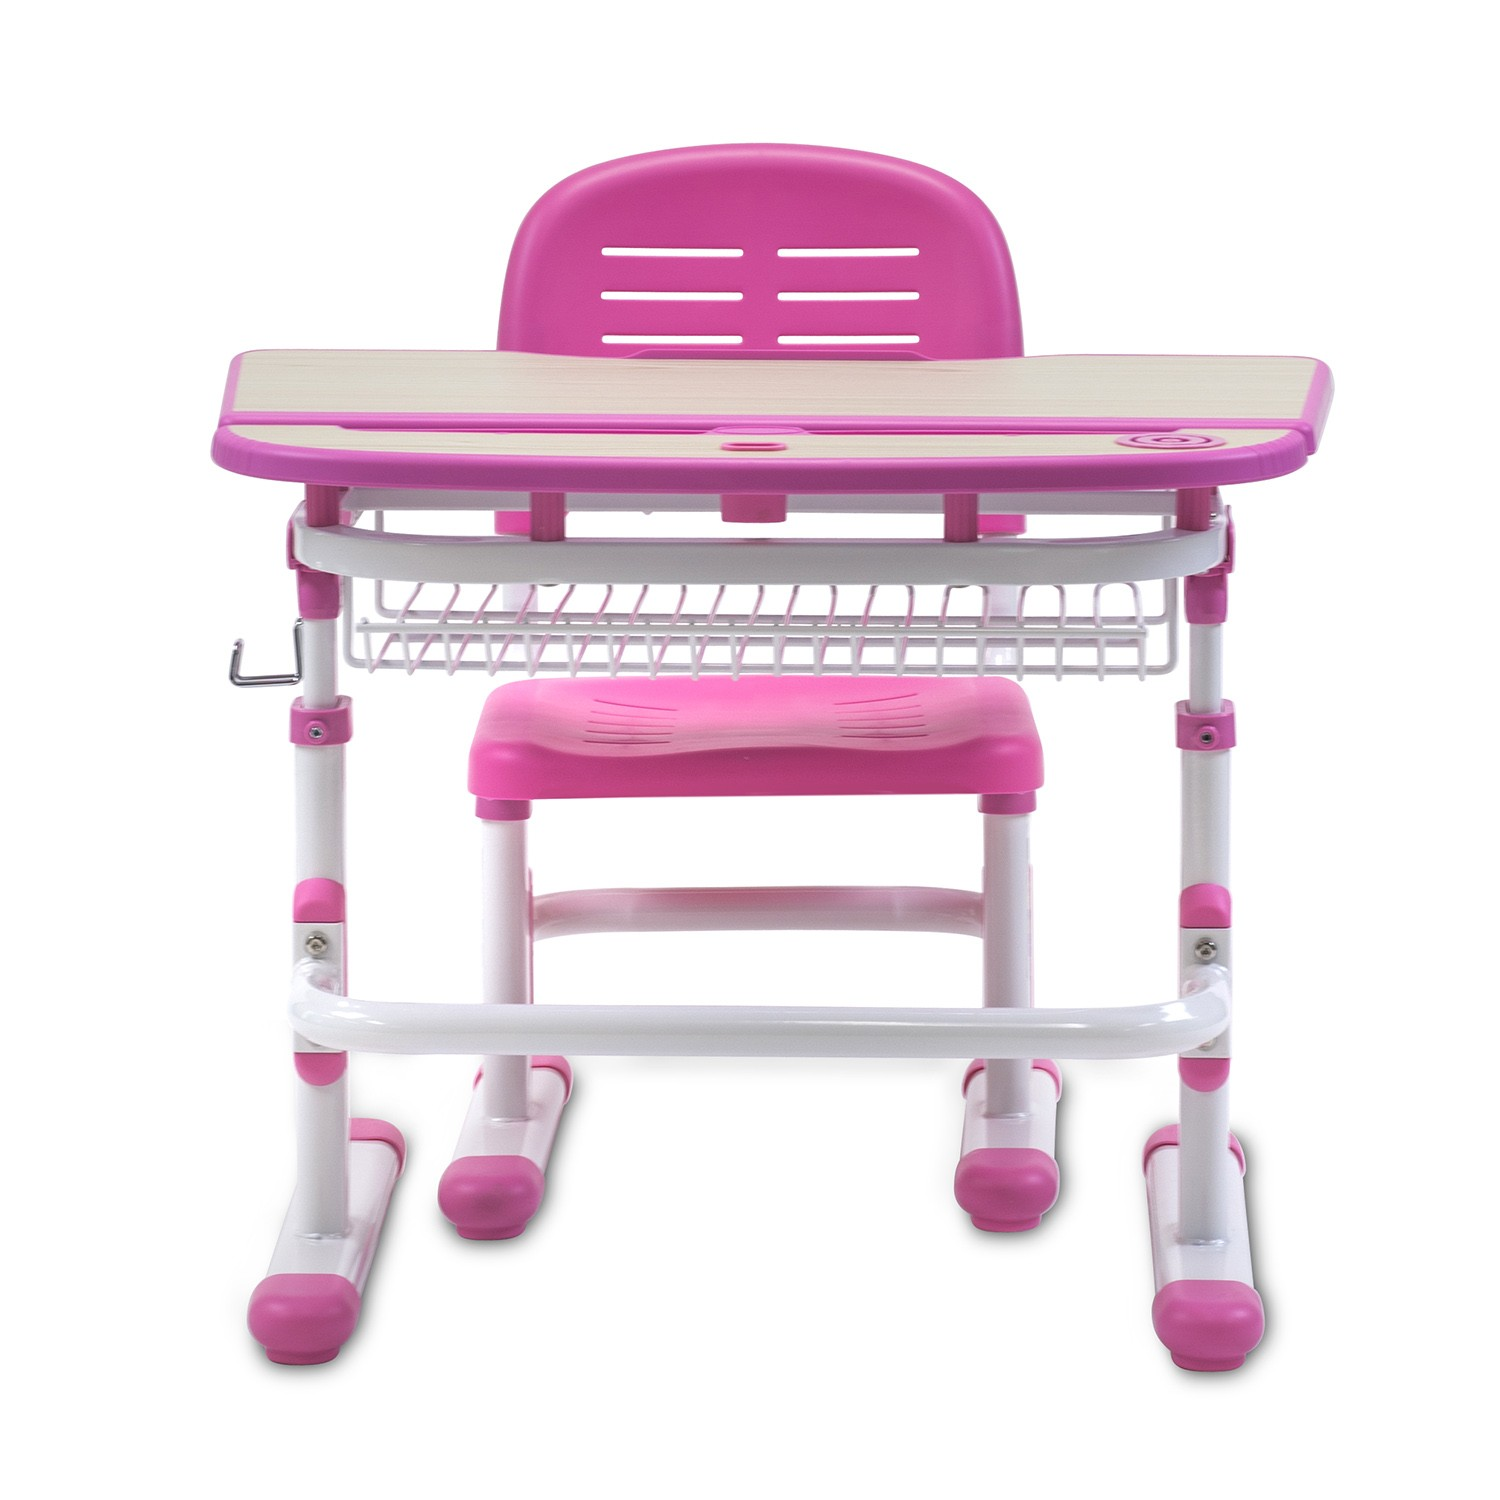 Mount-It! Childrens Desk and Chair Set, Kids School Workstation, Pink (MI-10101) - Walmart.com